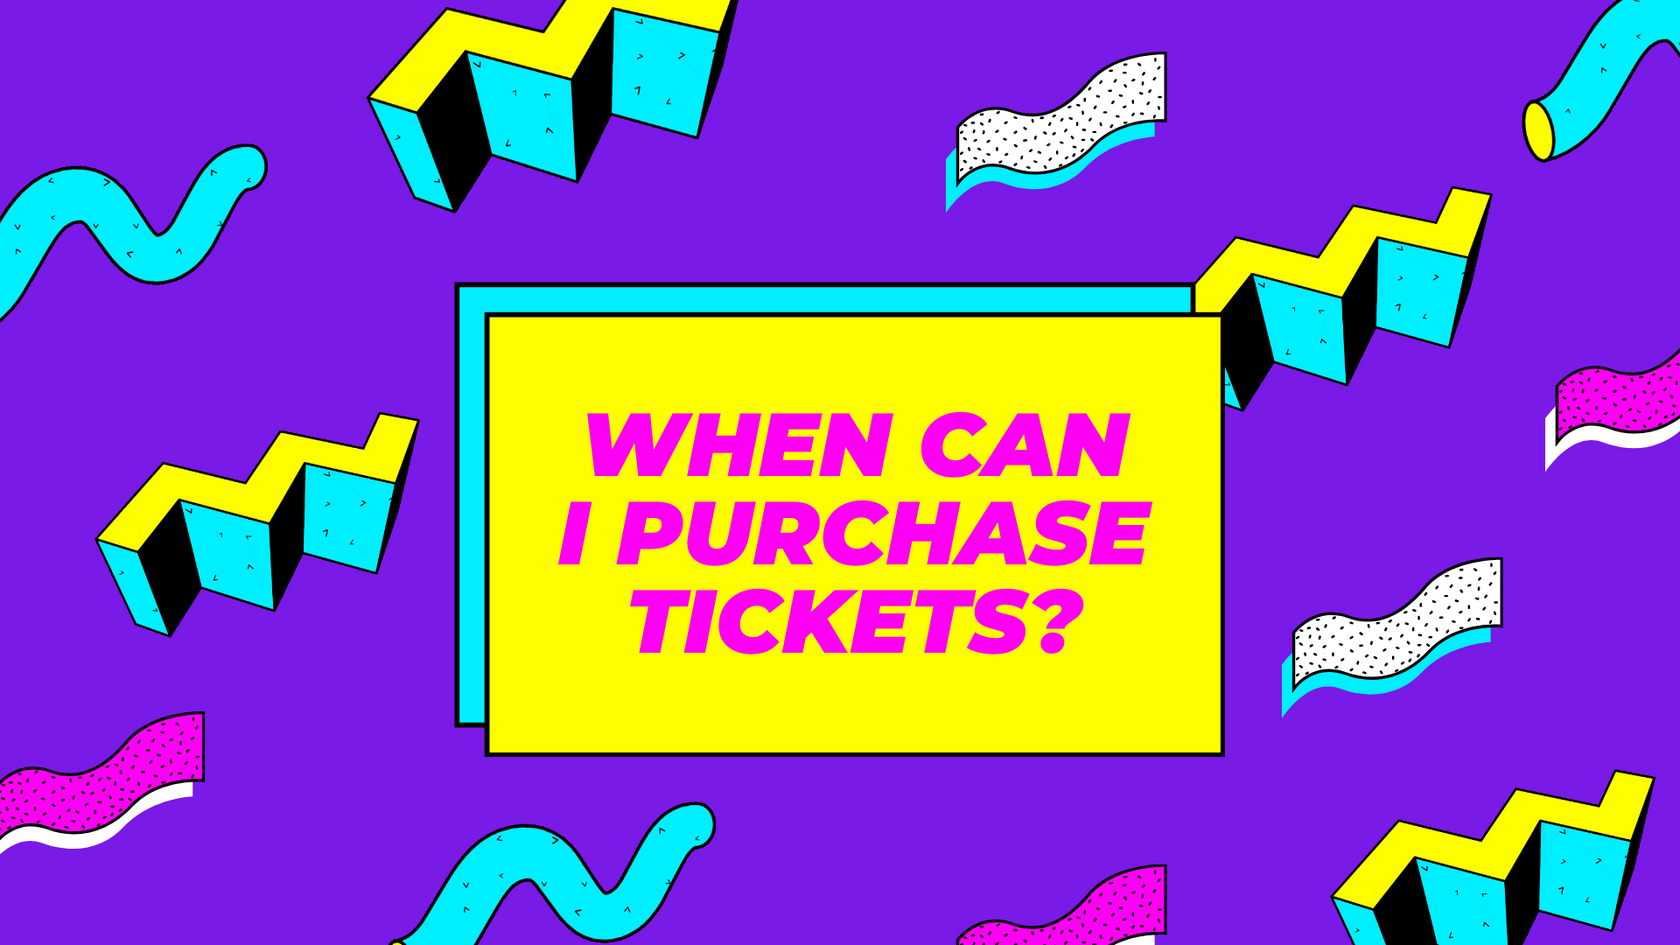 Purchasing Tickets